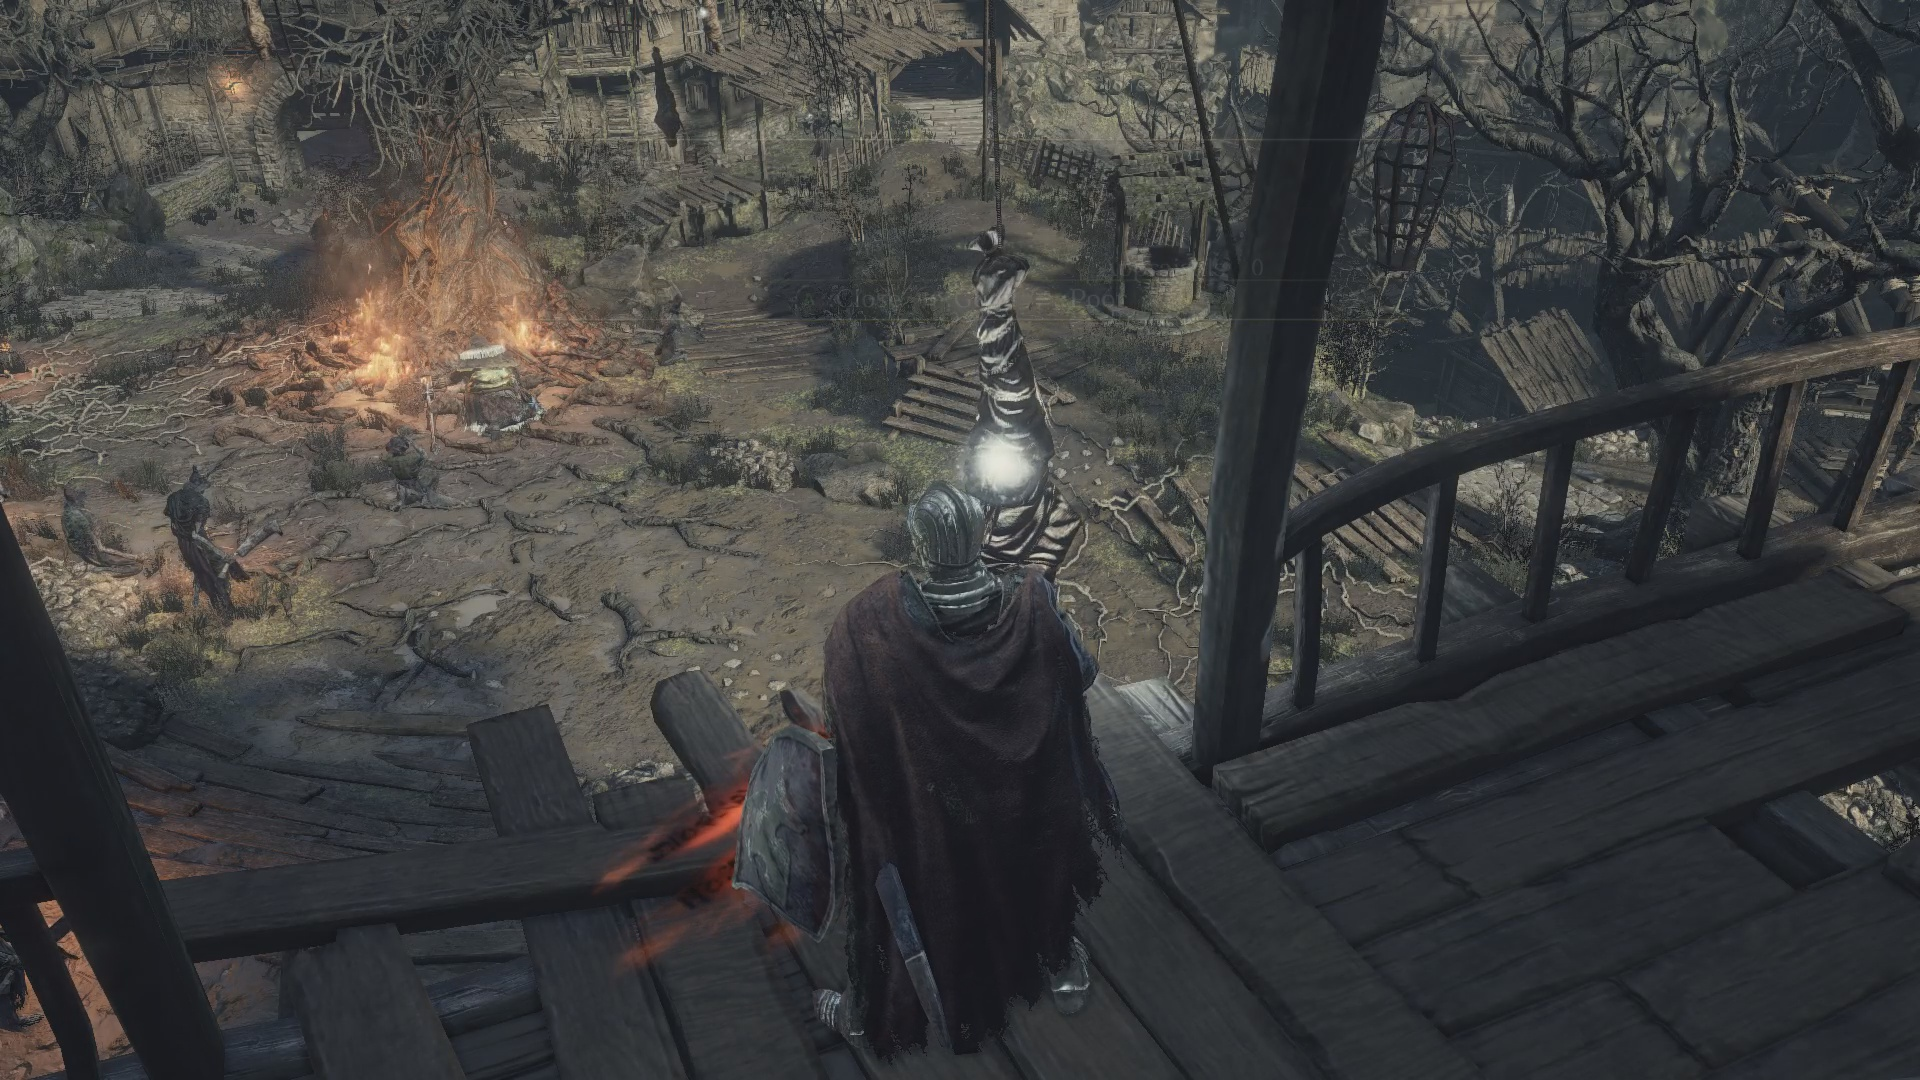 Dark souls how to find the cell key and free greirat